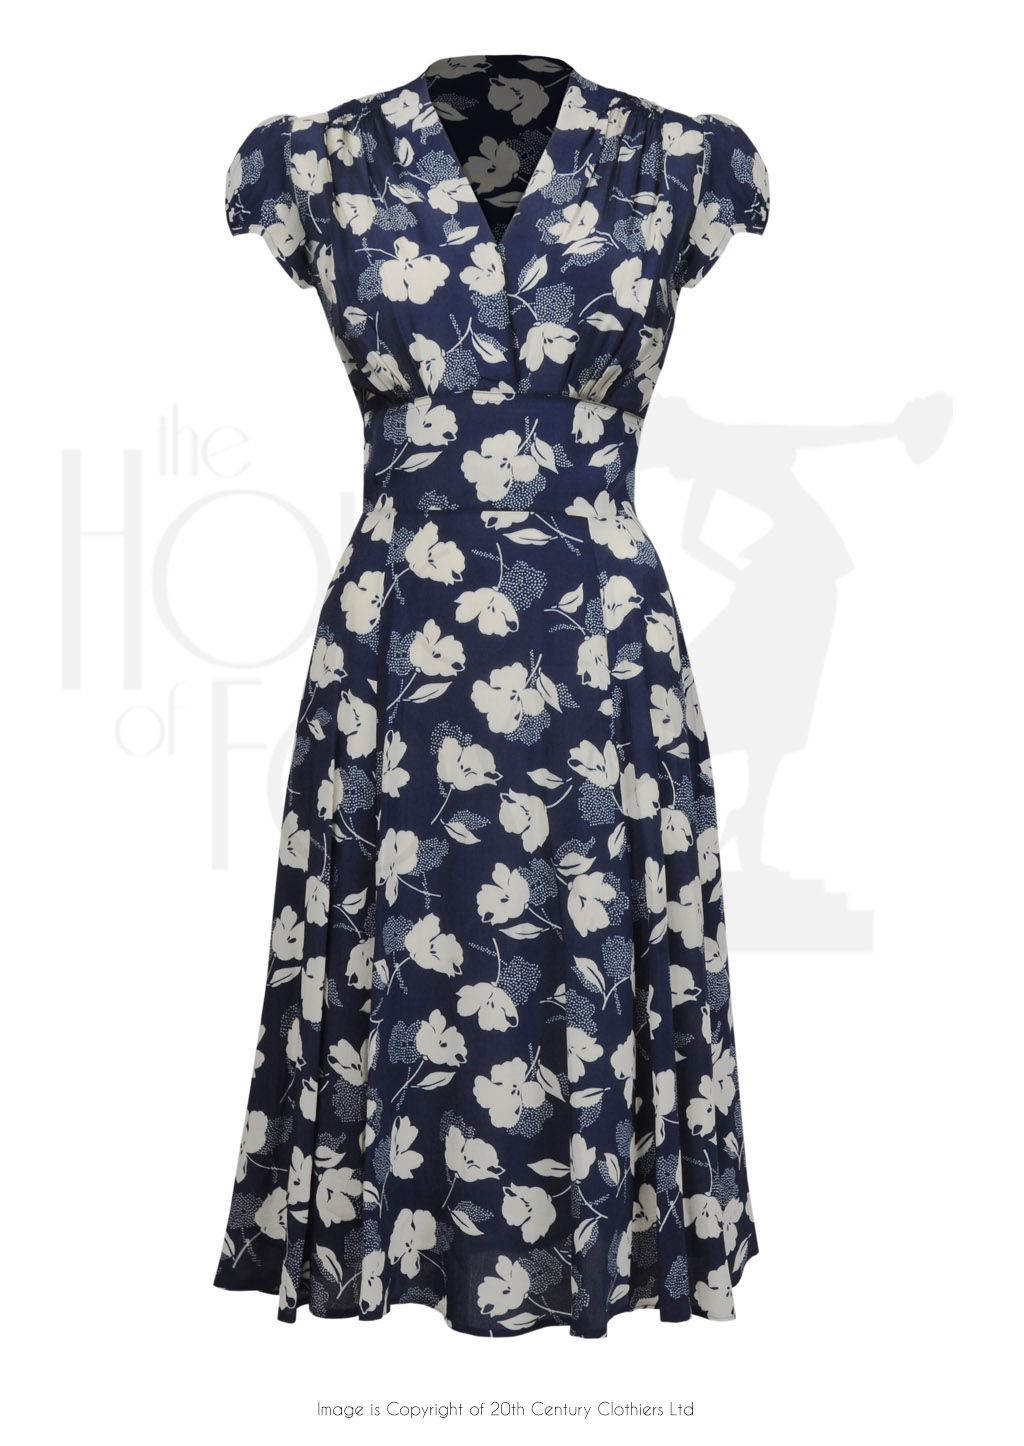 1930s Style Dresses   1930s Fashion History